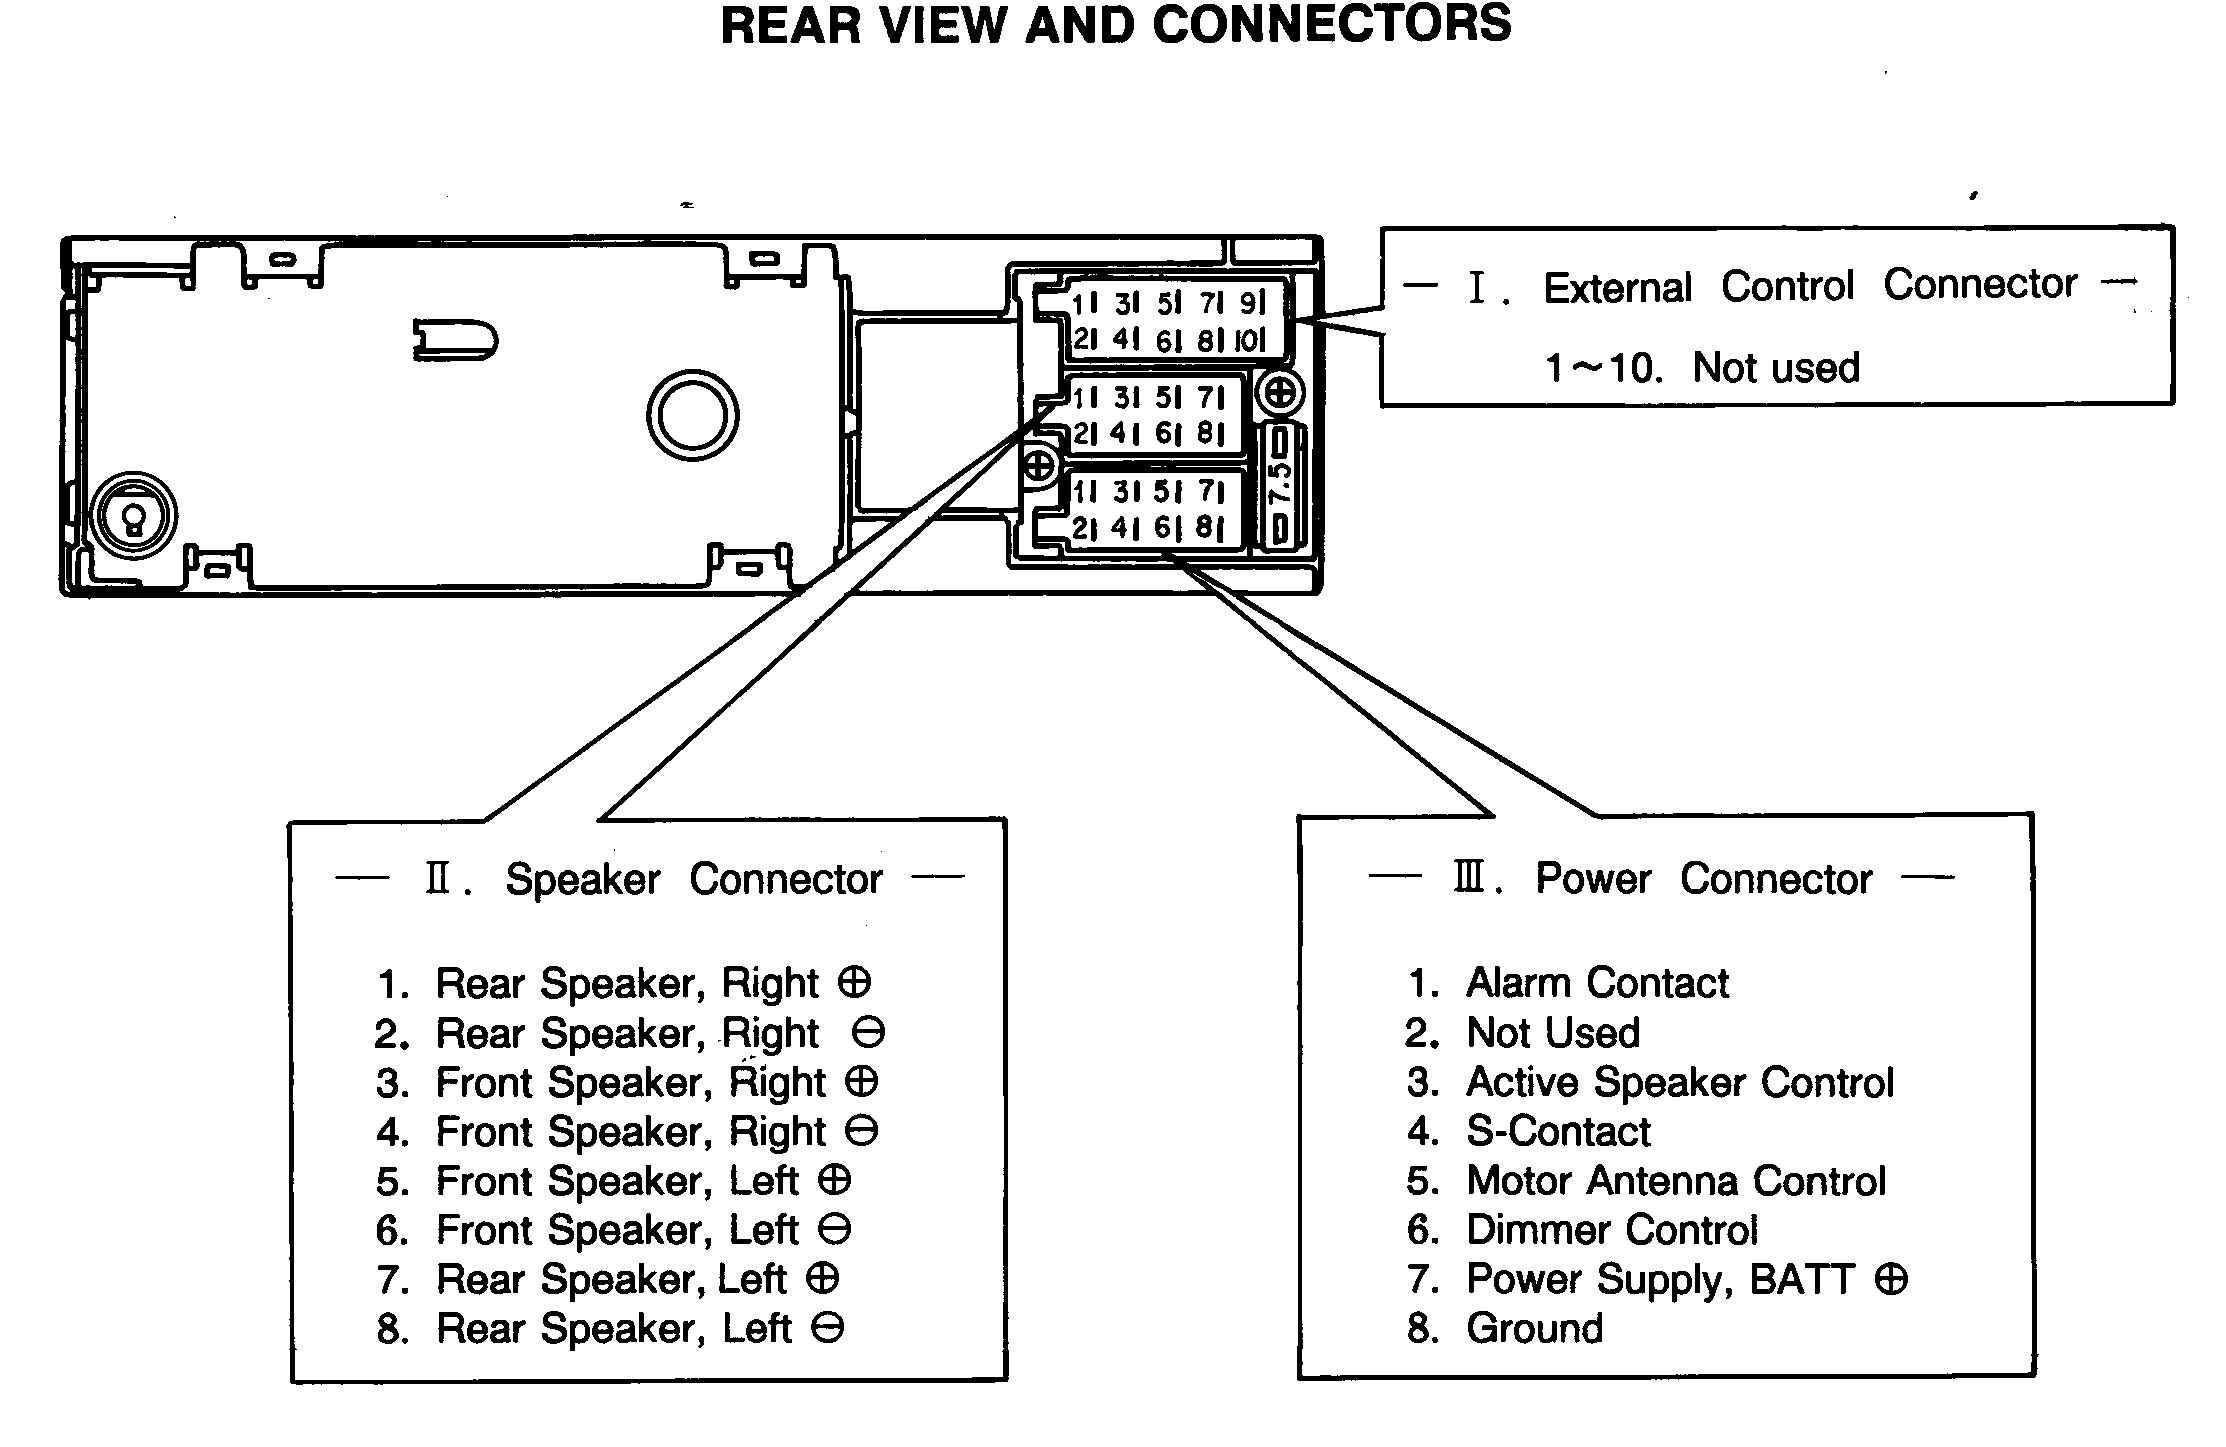 2001 ford Taurus Radio Wiring Diagram Car with Detaleted Wiring and Factory Stereo Diagrams Wiring Diagram Of 2001 ford Taurus Radio Wiring Diagram